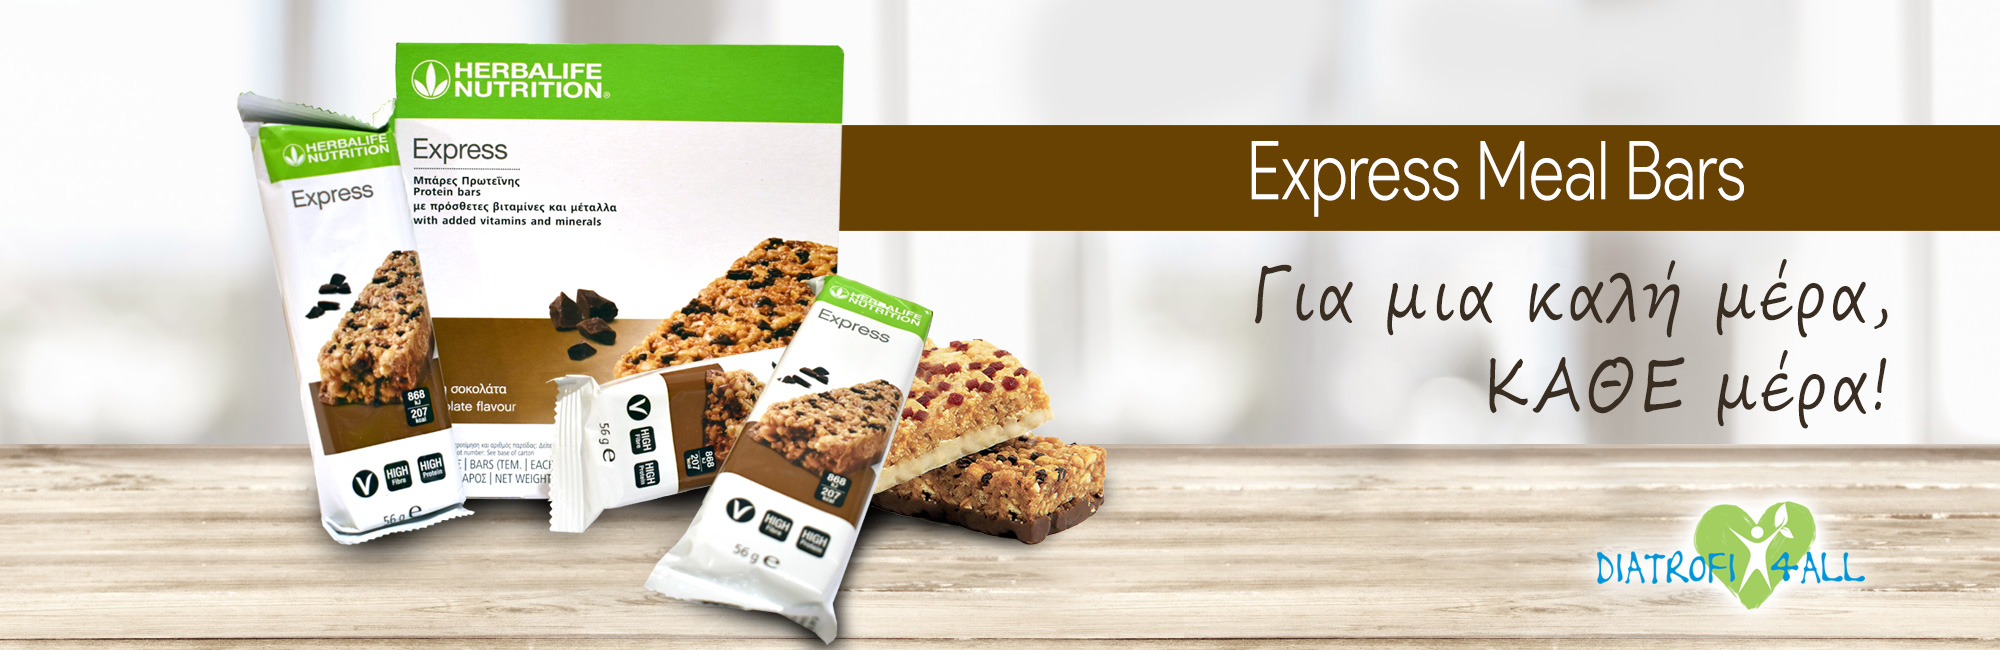 Express Meal Bars